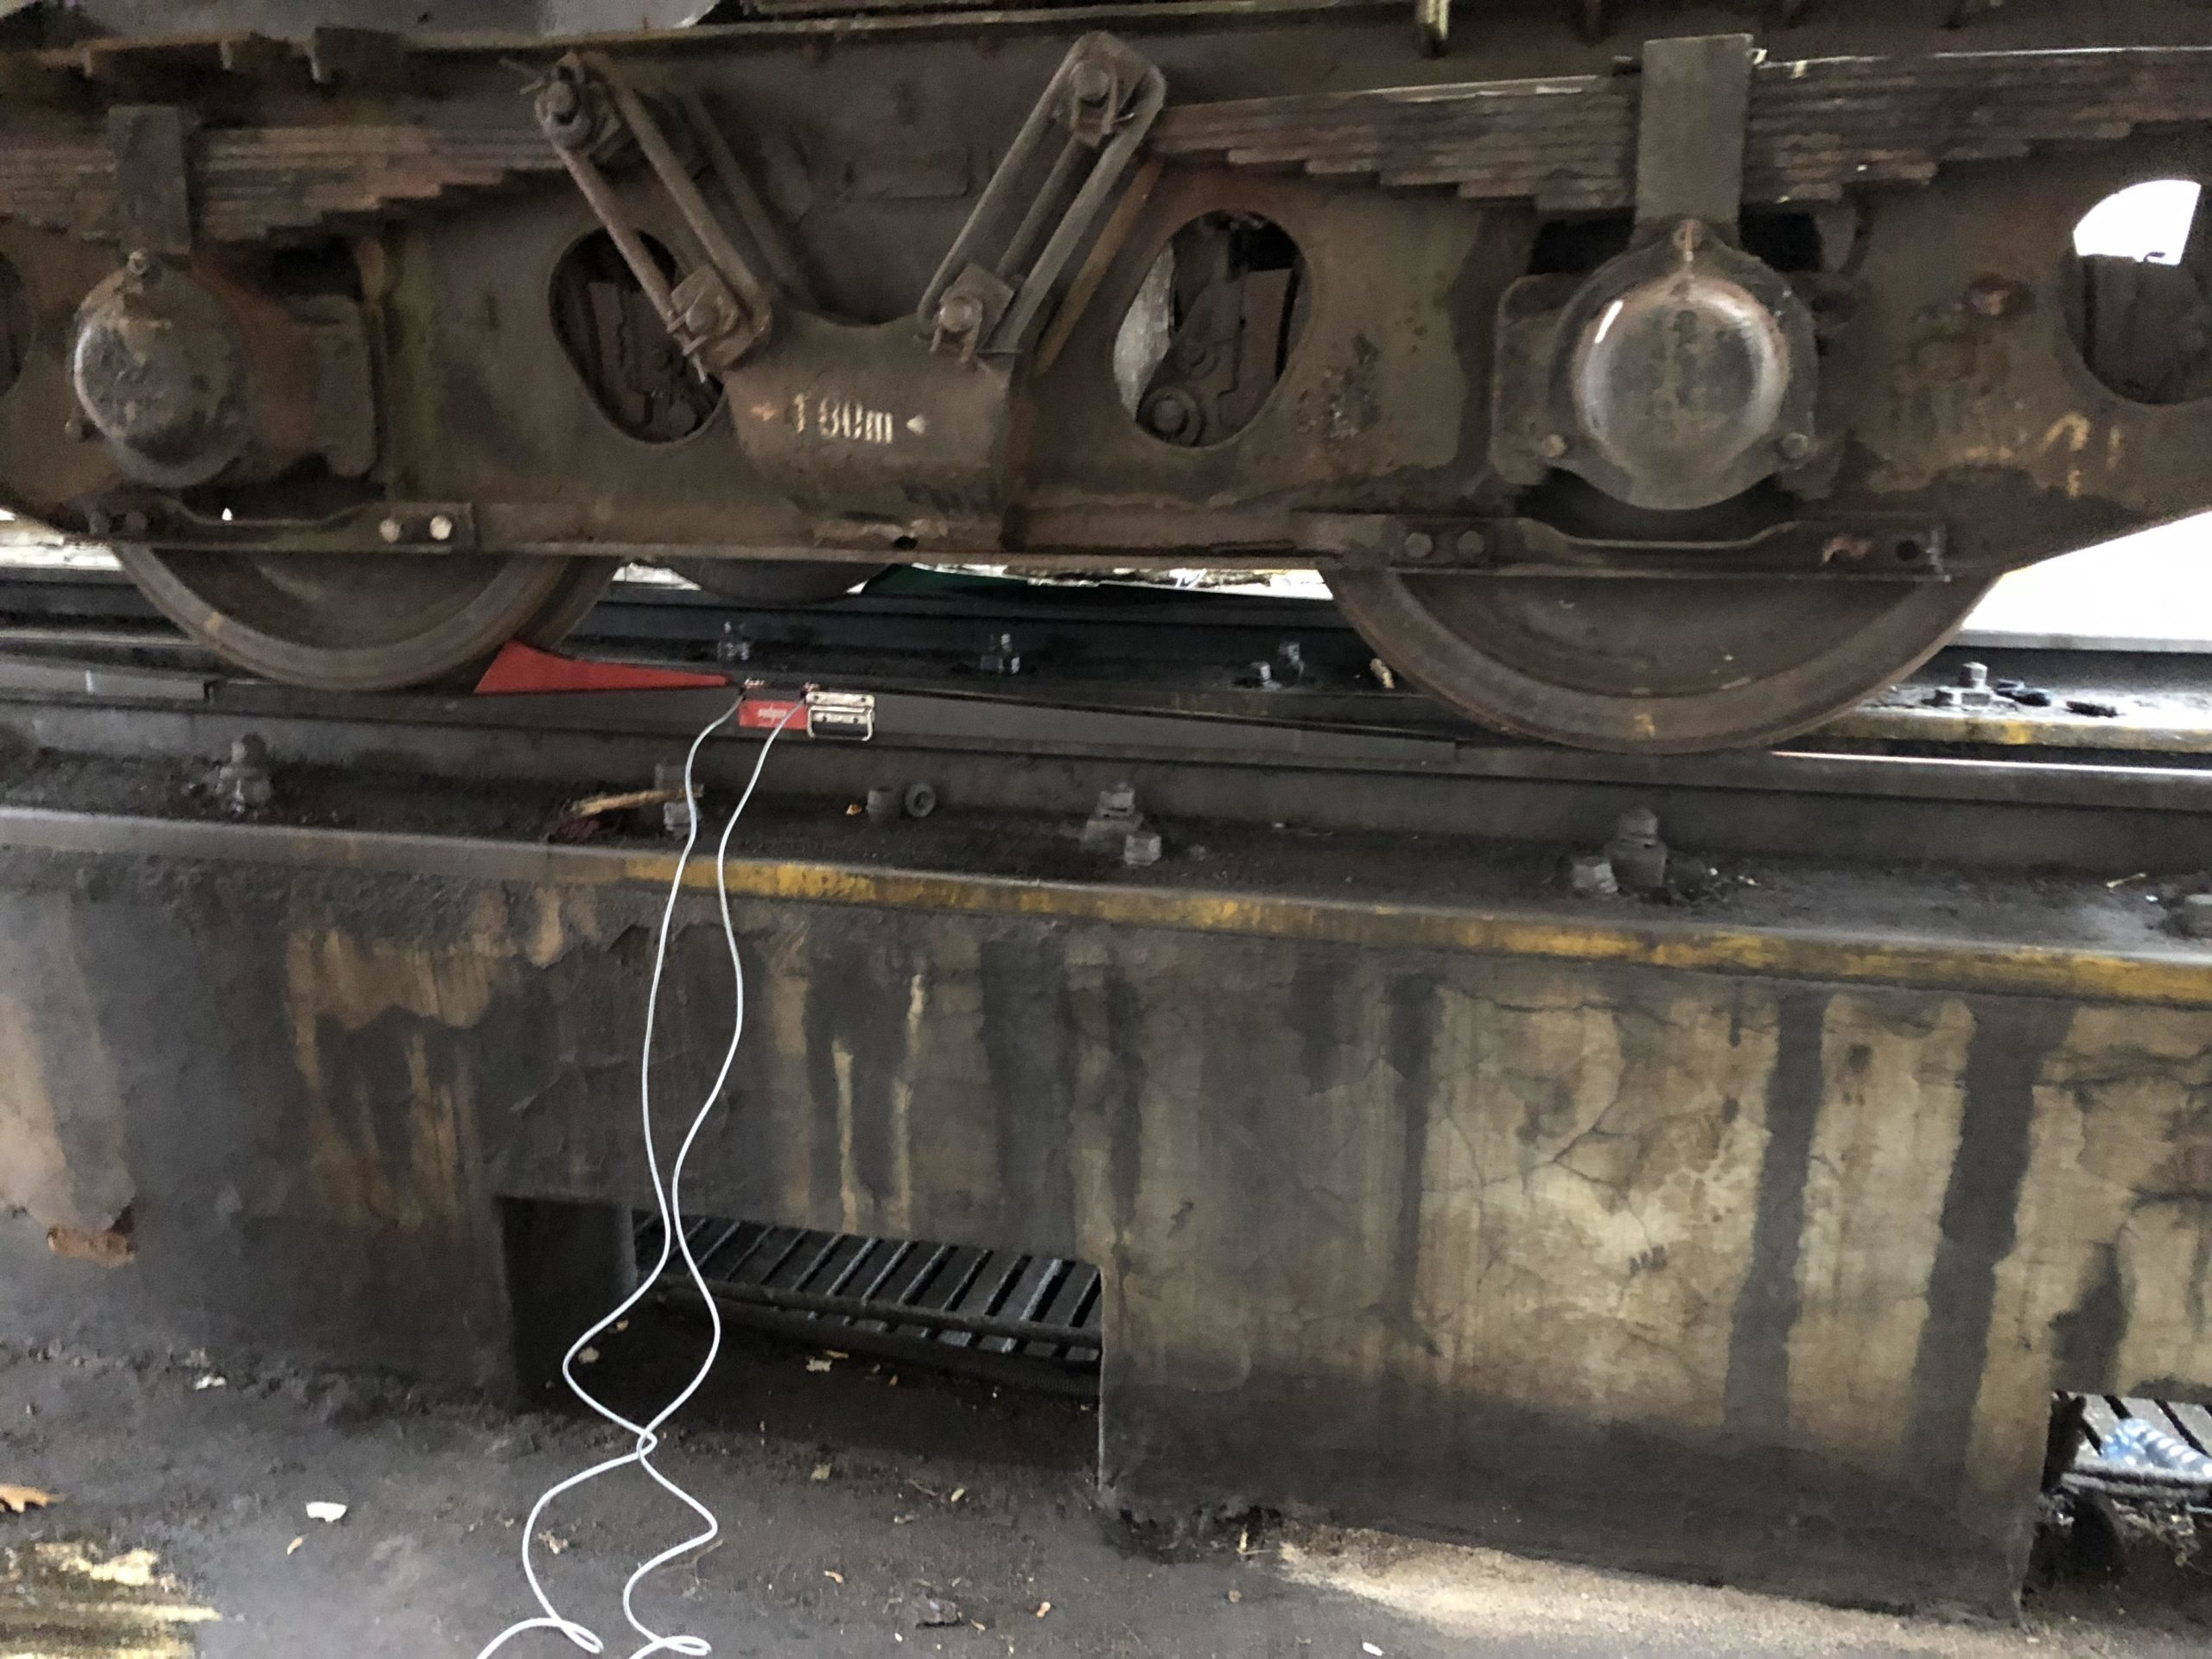 WEIGHING ROLLING STOCK